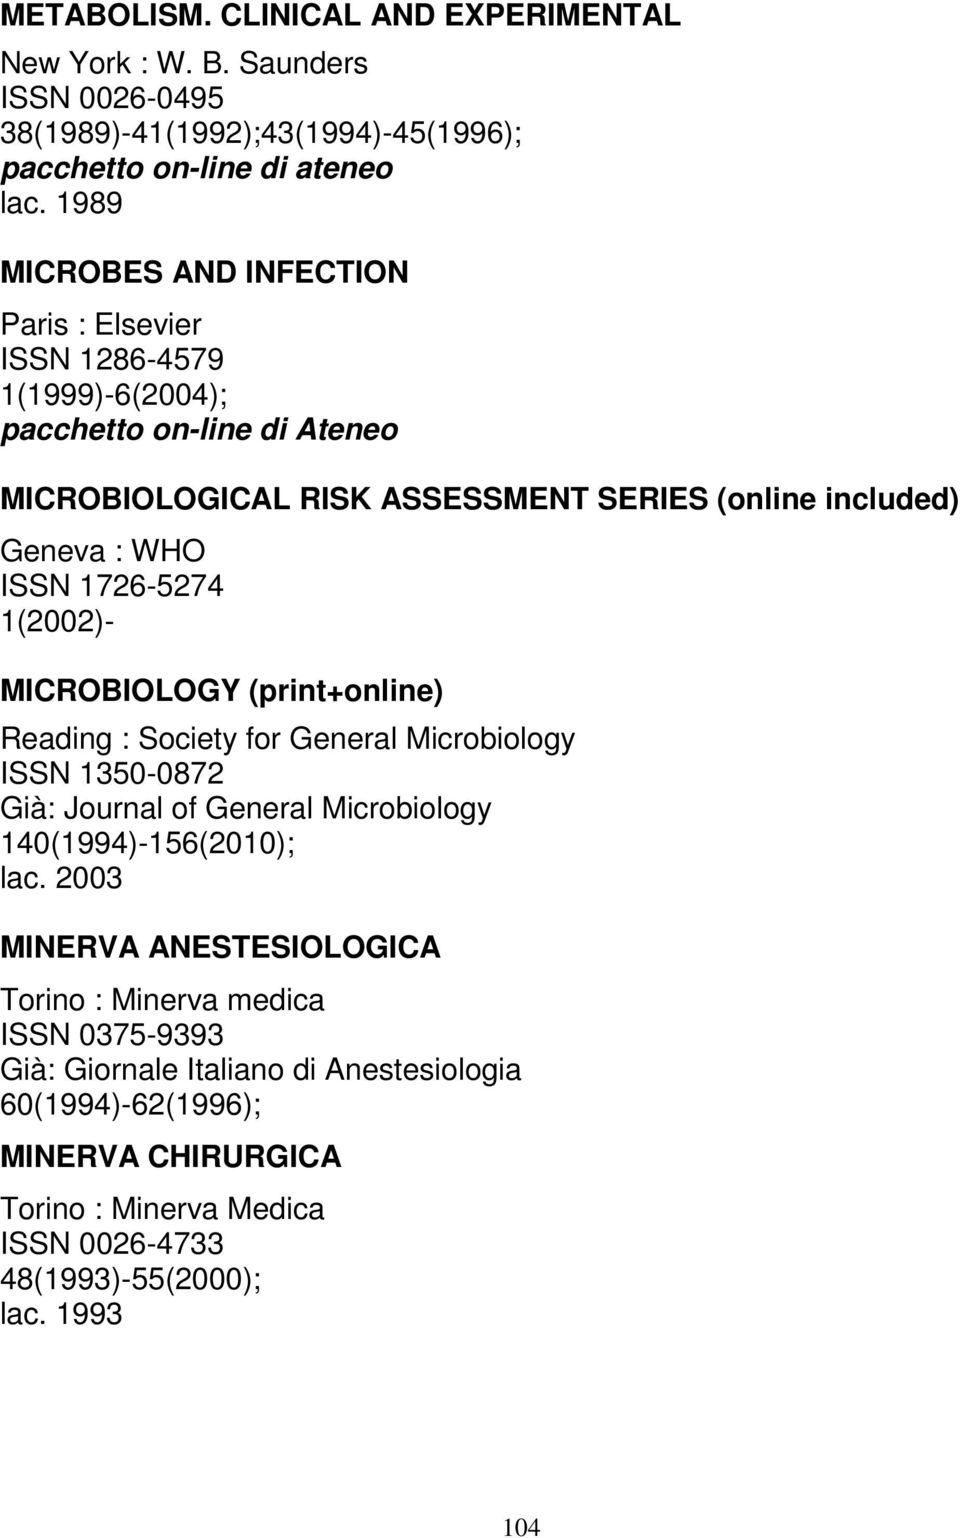 MICROBIOLOGY (print+online) Reading : Society for General Microbiology ISSN 1350-0872 Già: Journal of General Microbiology 140(1994)-156(2010); lac.